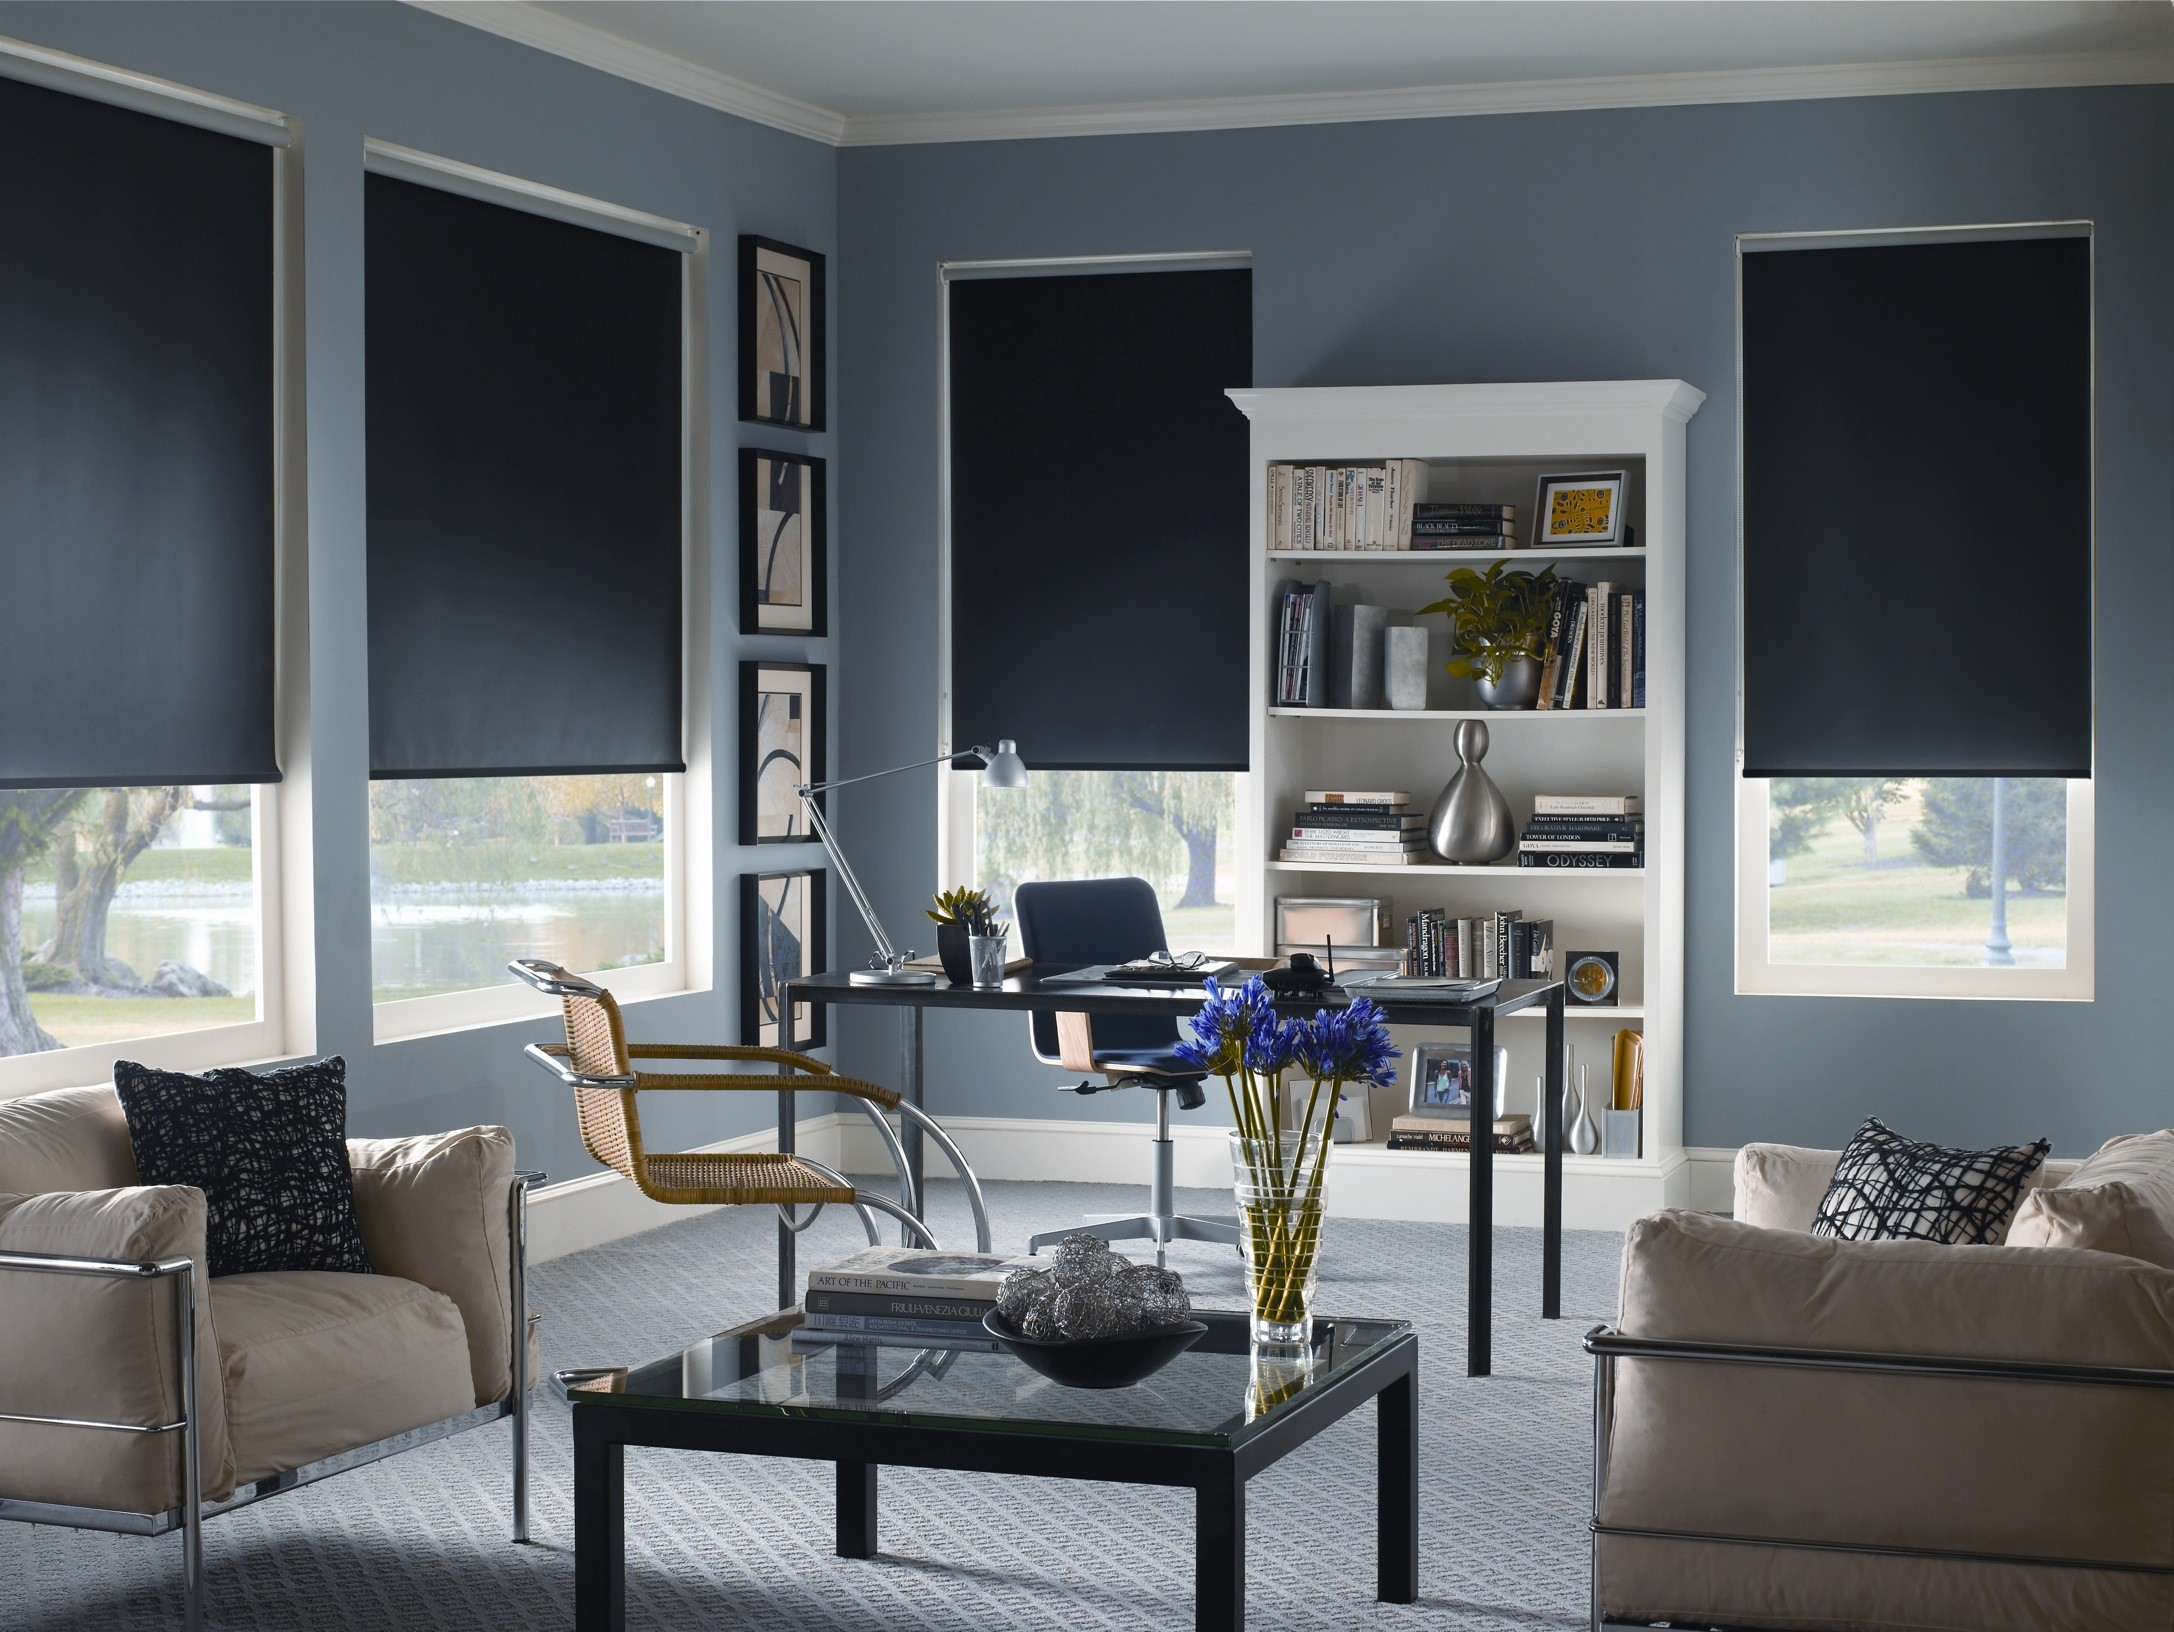 Top Down Blinds Ikea Favorite Options For Ikea Blackout Blinds | Homesfeed